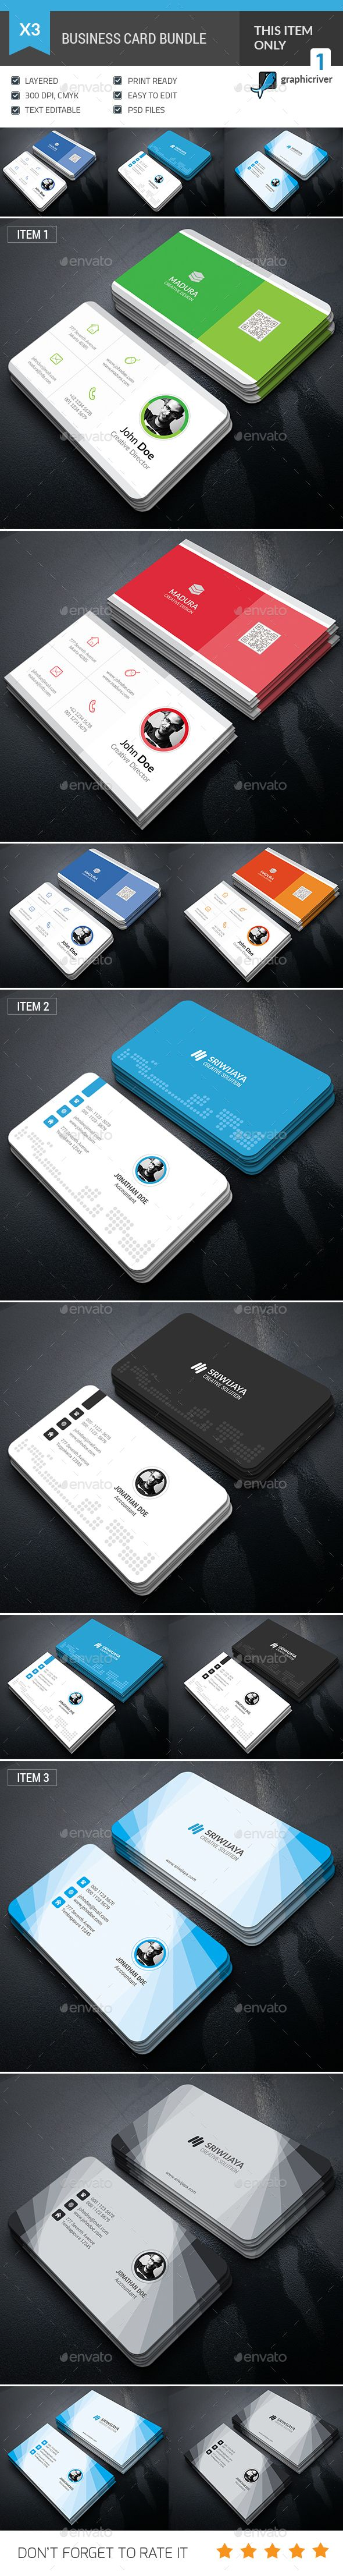 Professional Business Card Templates PSD Bundle. Download here: http://graphicriver.net/item/professional-business-card-bundle/15926441?ref=ksioks